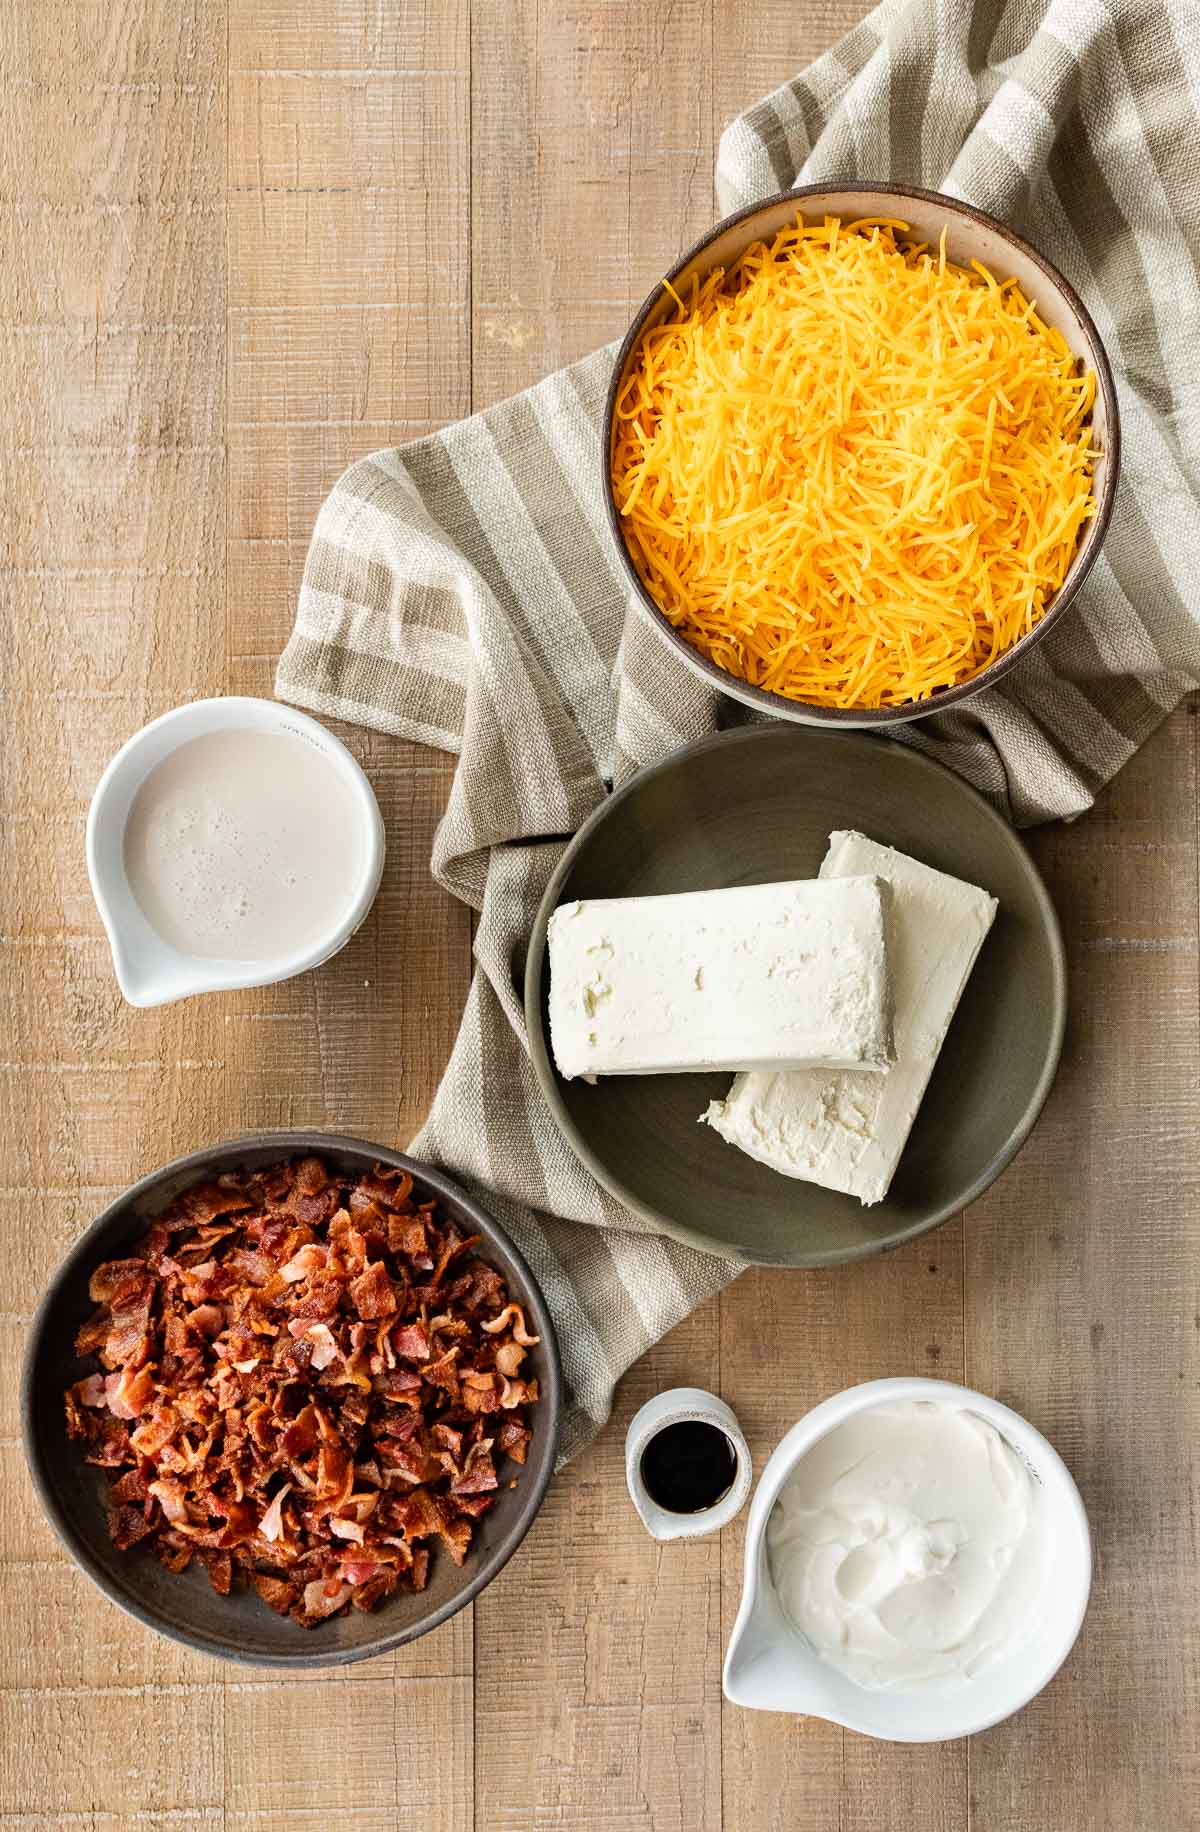 Ingredients for Hot Bacon Cheese Dip in prep bowls